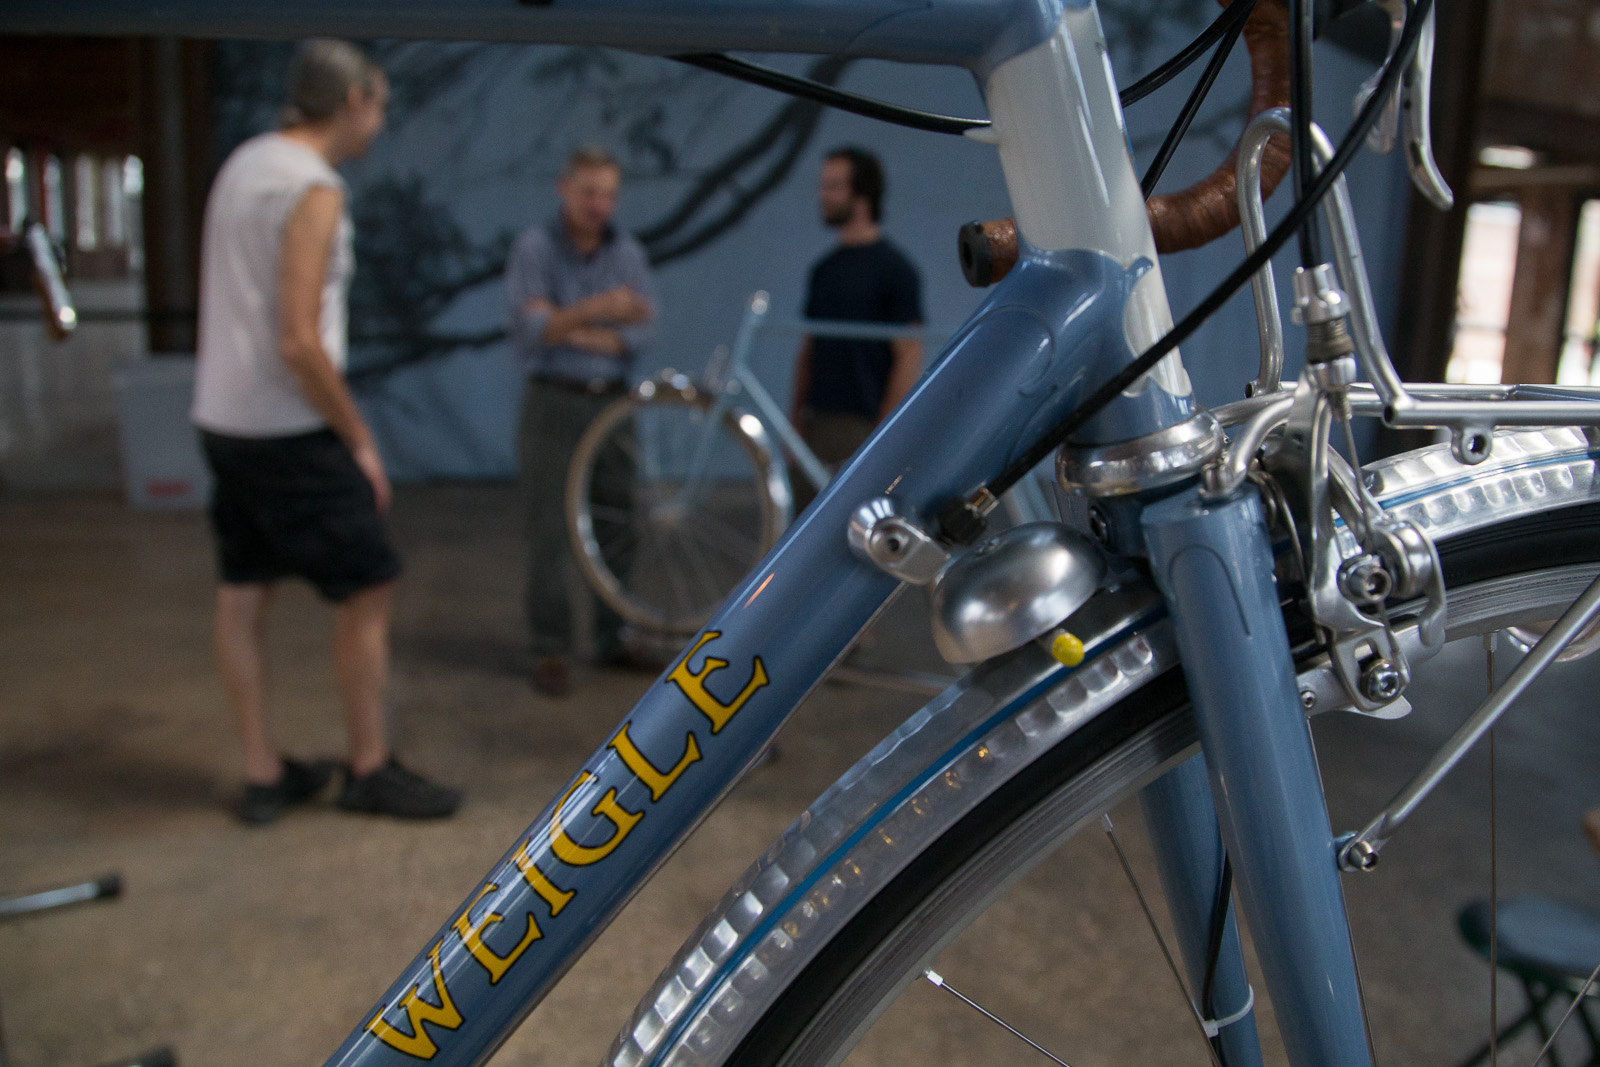 J.P. Weigle Cycles